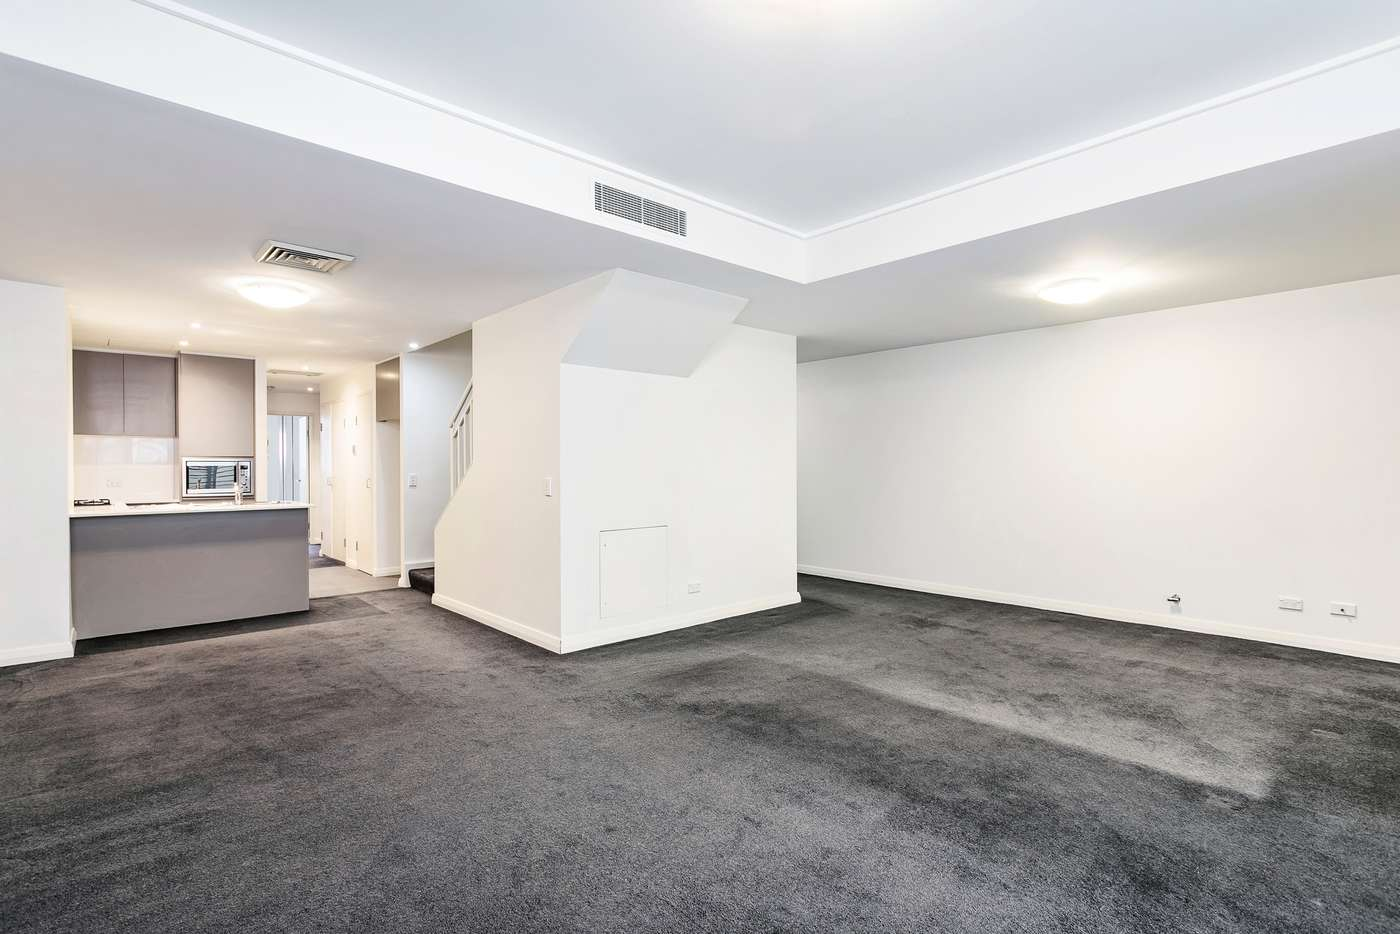 Main view of Homely apartment listing, 430/16 Marine Parade, Wentworth Point NSW 2127